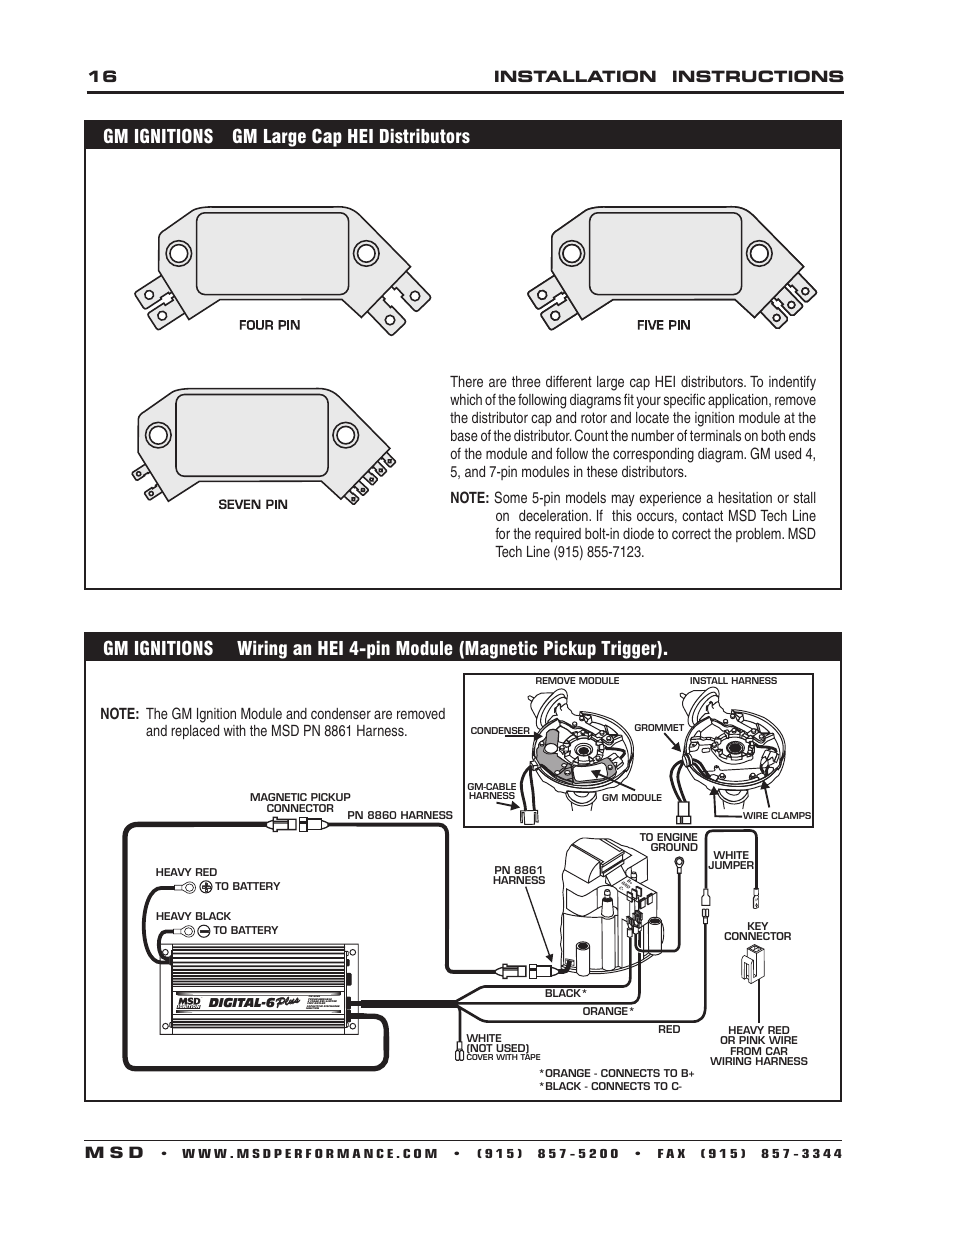 Gm ignitions gm large cap hei distributors, 16 installation instructions m  s d | MSD 6520 Digital 6-Plus Ignition Control Installation User Manual |  Page 16 ...